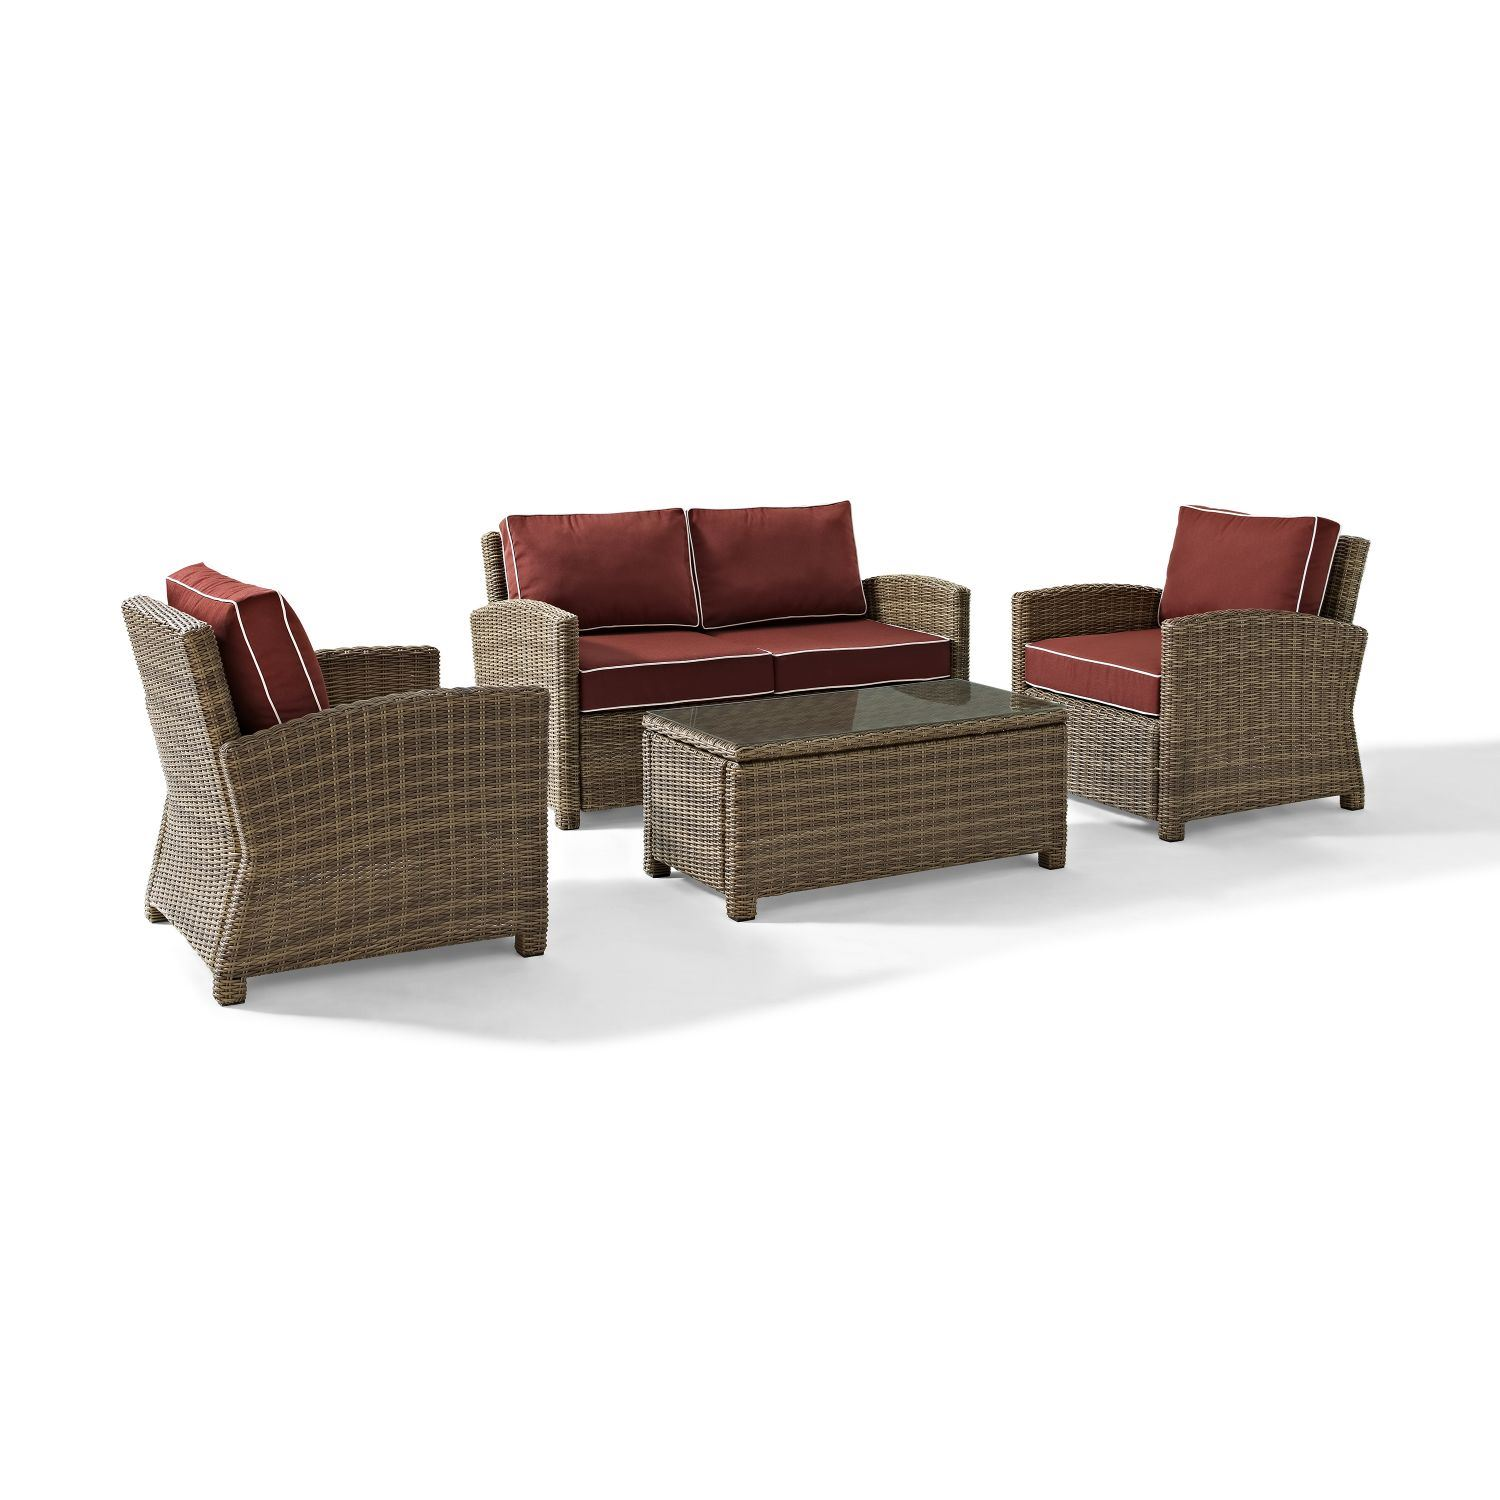 Picture of BRADENTON 4 PIECE OUTDOOR WICKER SEATING SET WITH